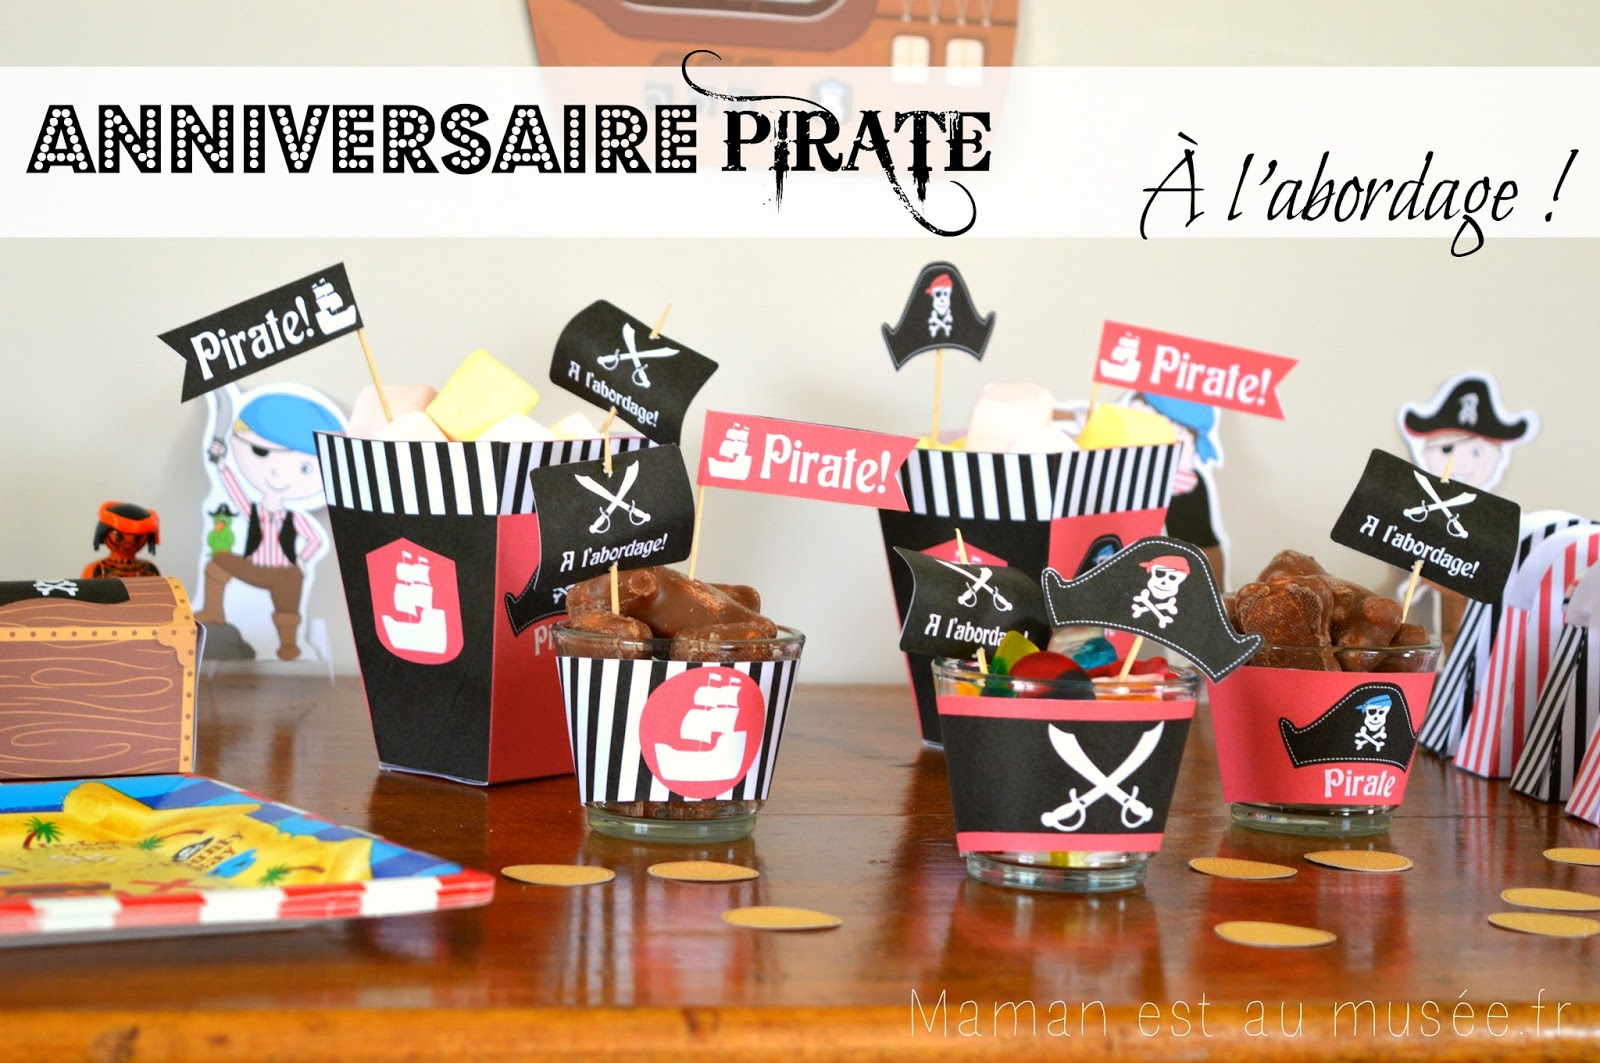 maman est au mus e blog famille lifestyle un anniversaire pirate pour ses 8 ans. Black Bedroom Furniture Sets. Home Design Ideas